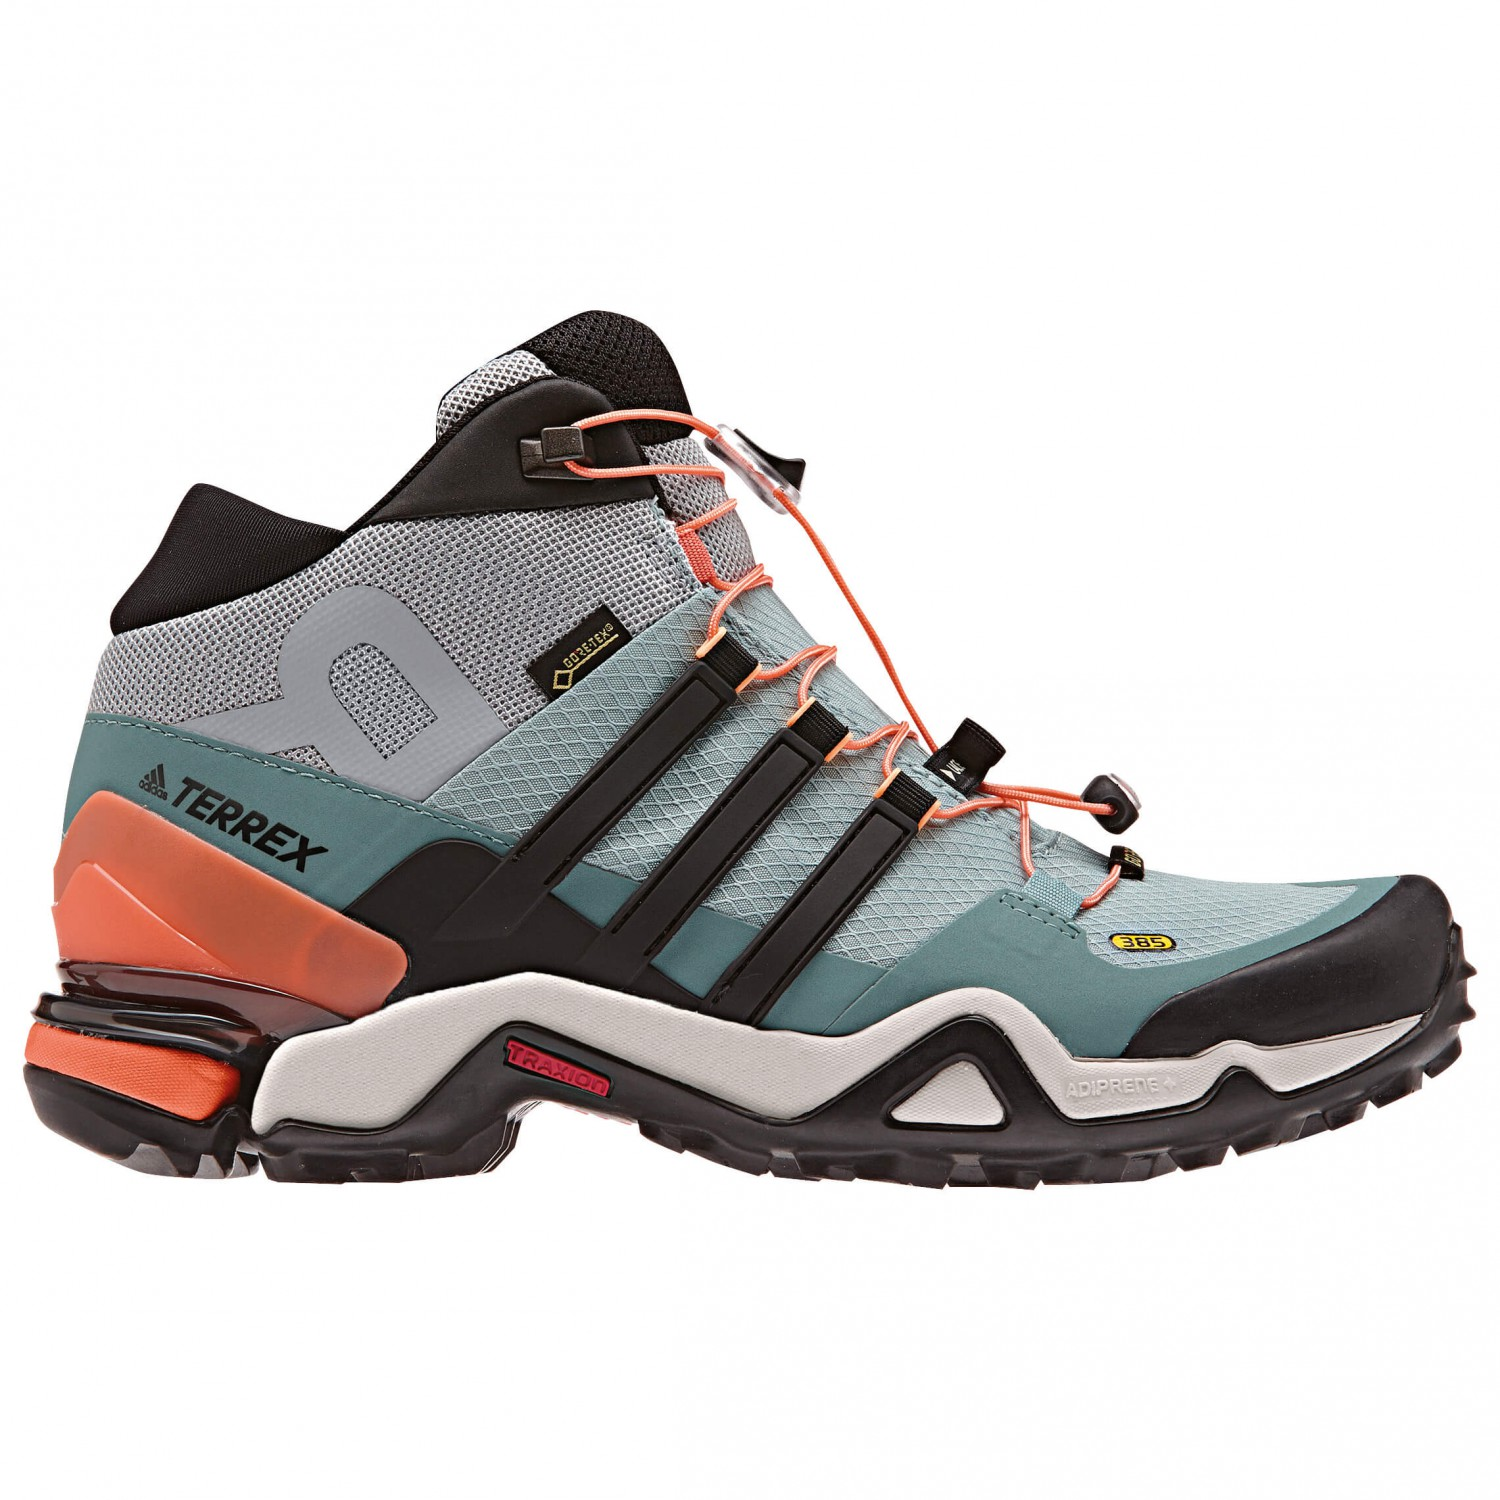 Adidas Terrex Fast R Mid GTX - Walking boots Women's | Buy ...